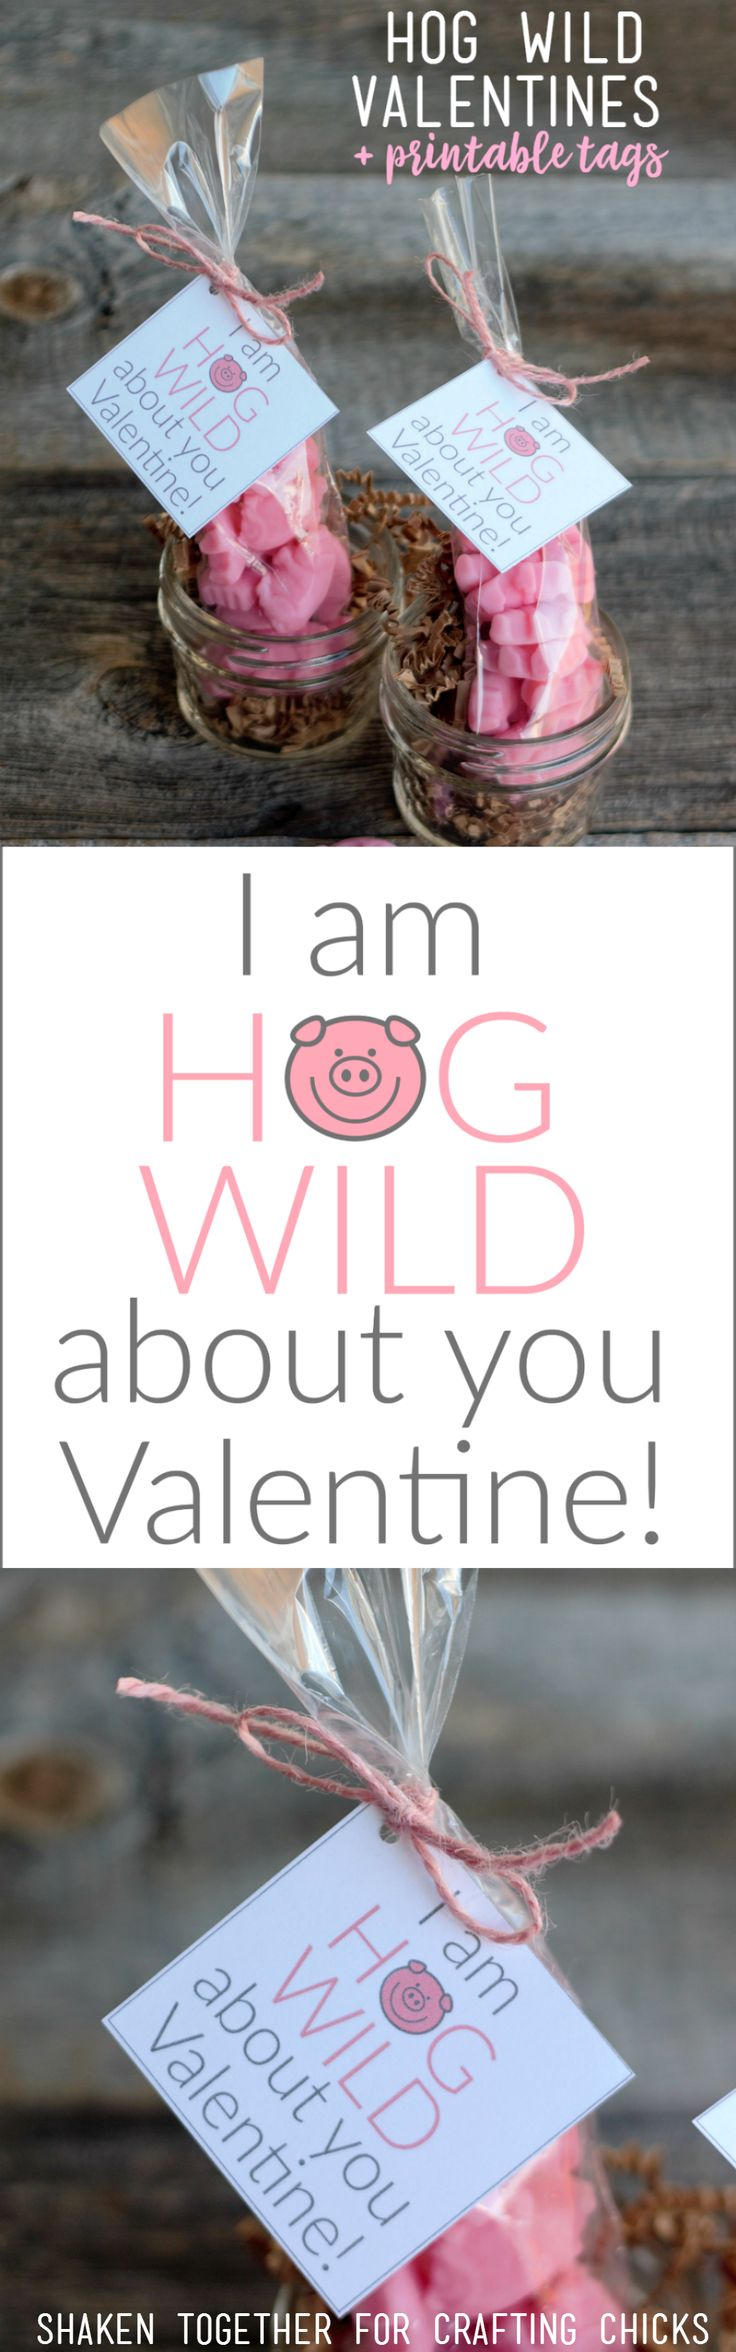 I Am Hog Wild About You Valentines - gummy pigs + printable tags = the cutest li...